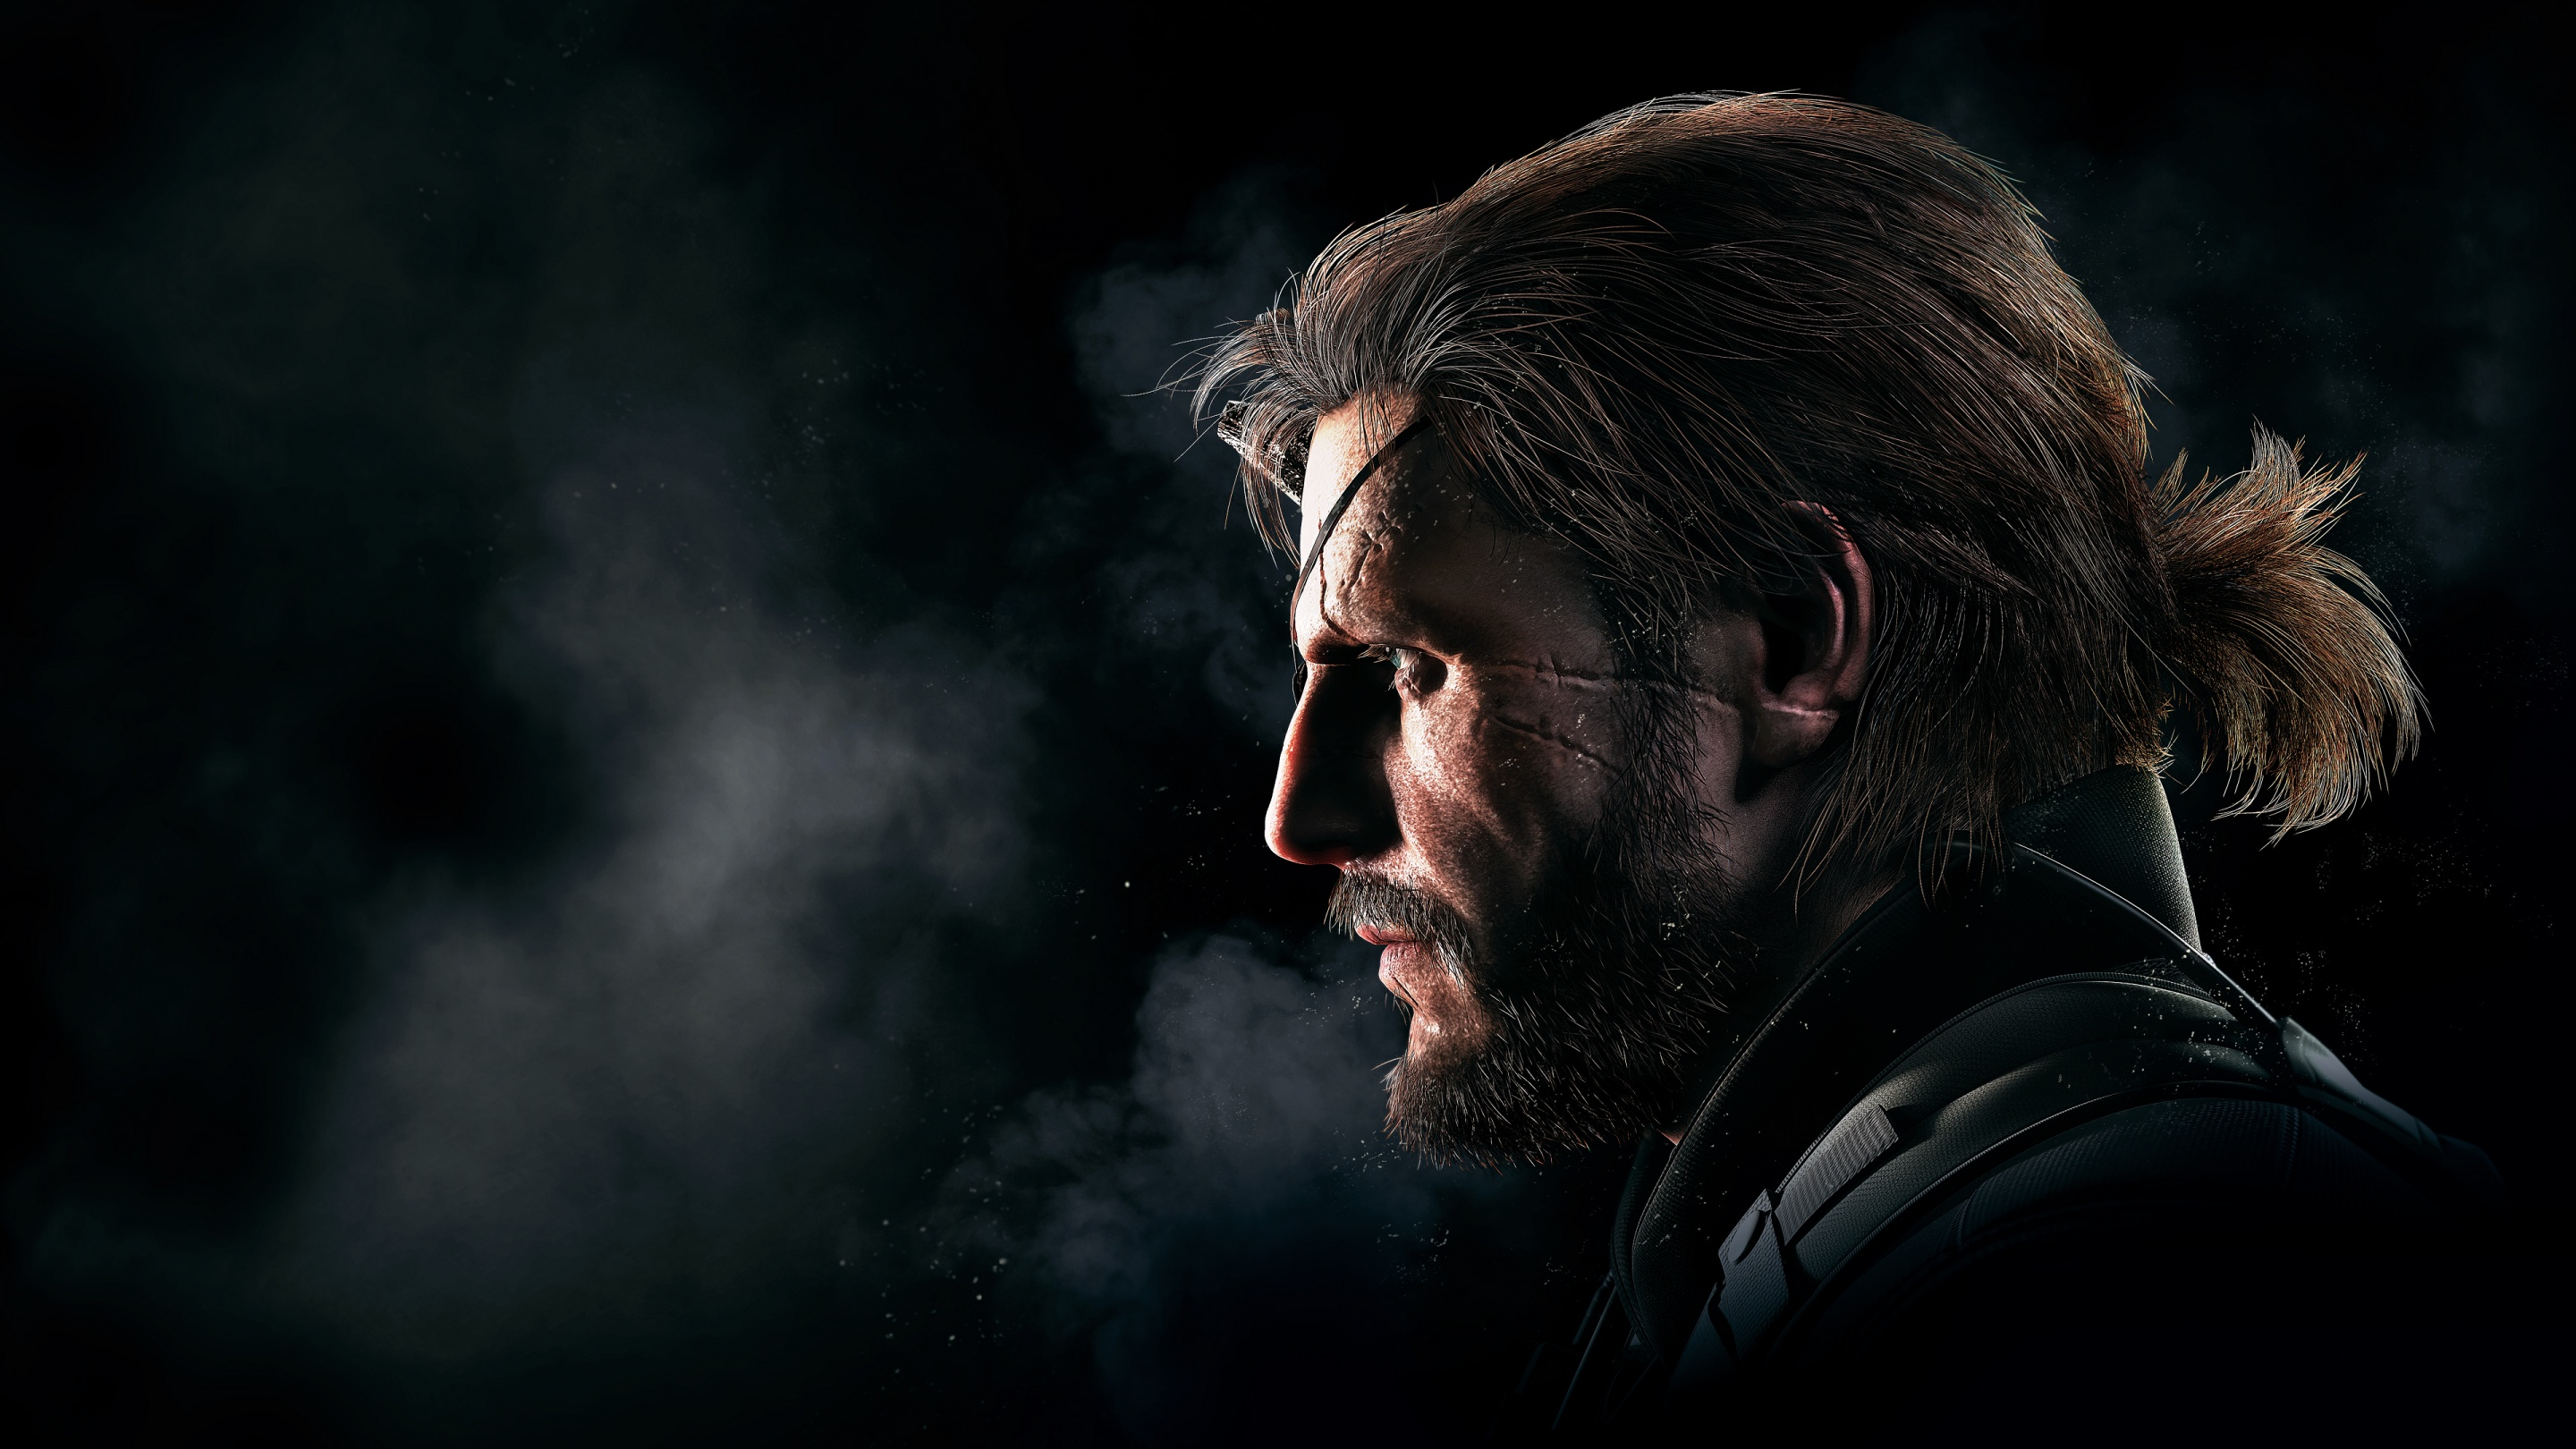 Snake Metal Gear Solid V The Phantom Pain